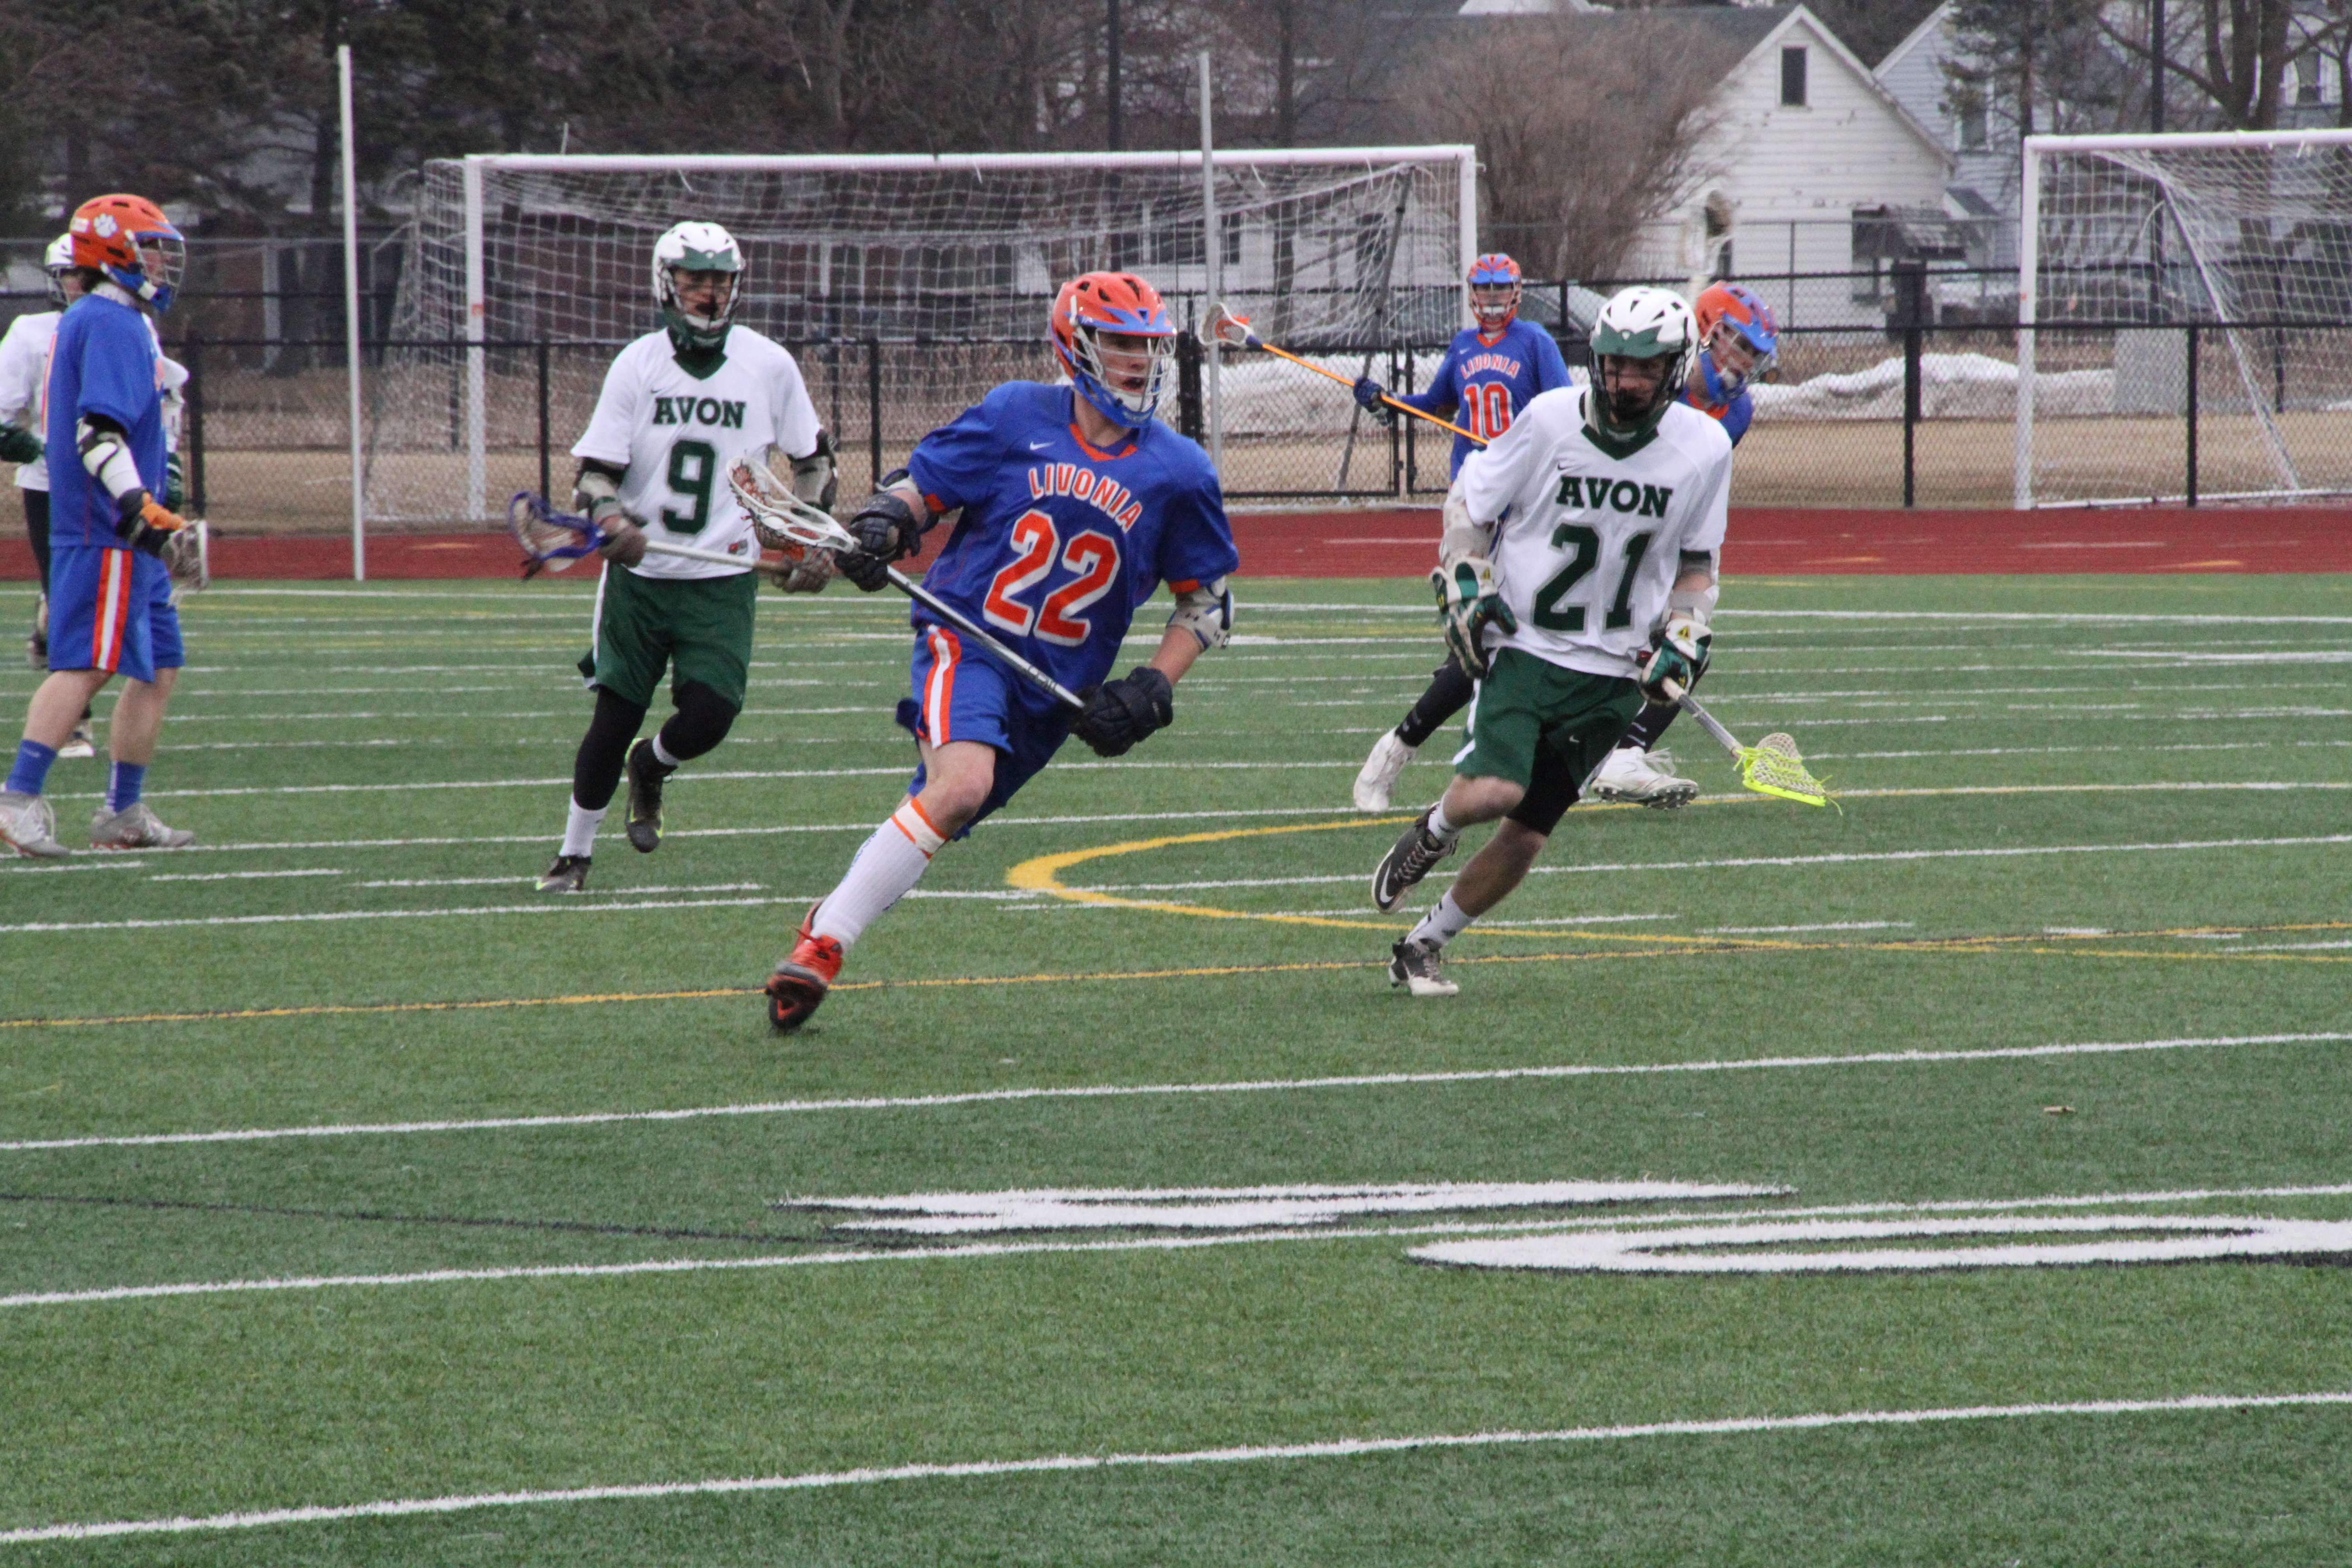 Boys Lacrosse: Livonia's Mohnkern tallies 8 in win over Avon